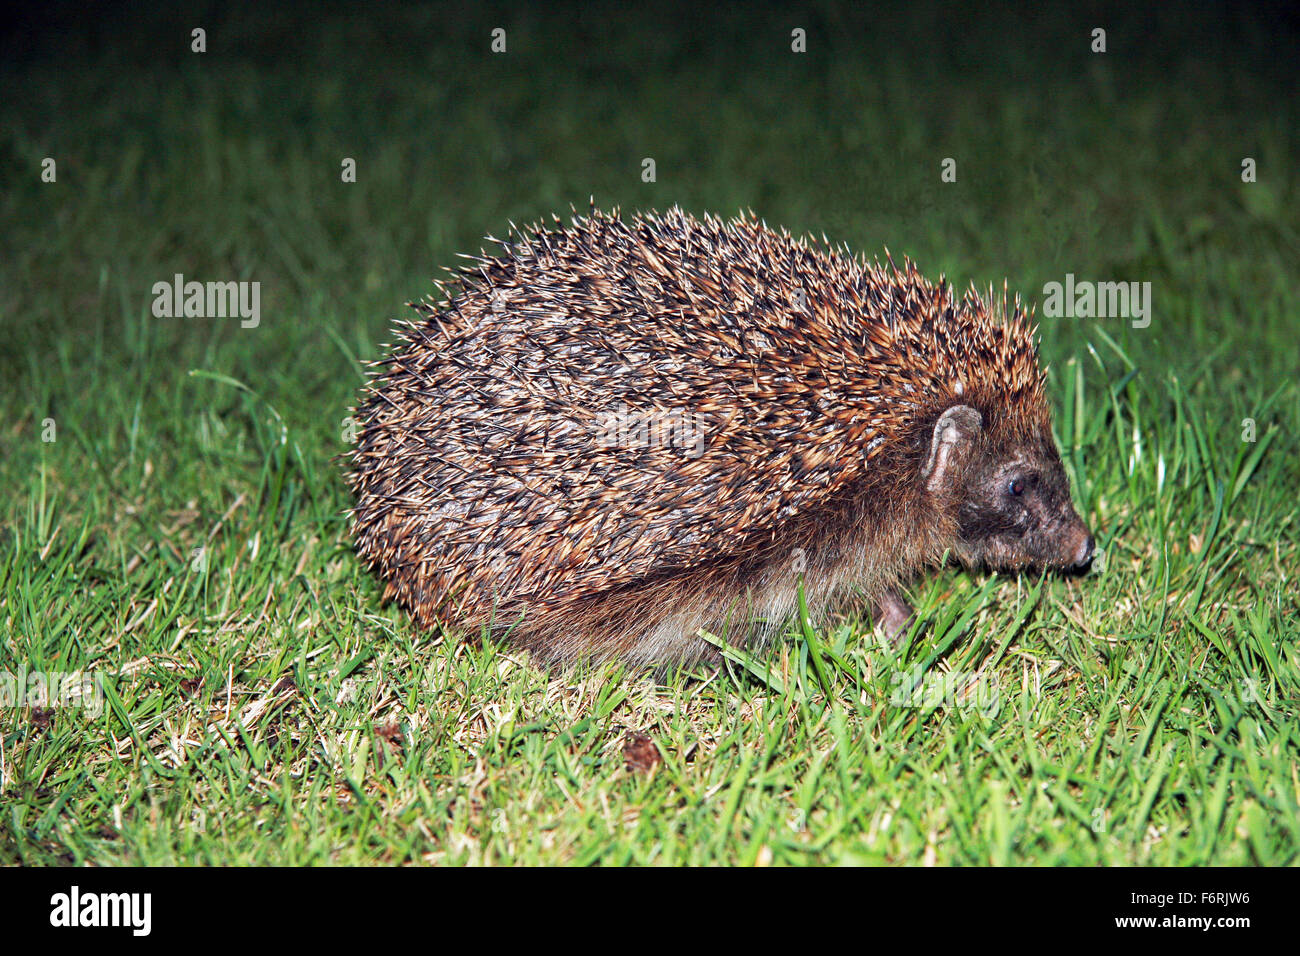 European Hedgehog Erinaceus europaeus in garden at night looking for food - Stock Image